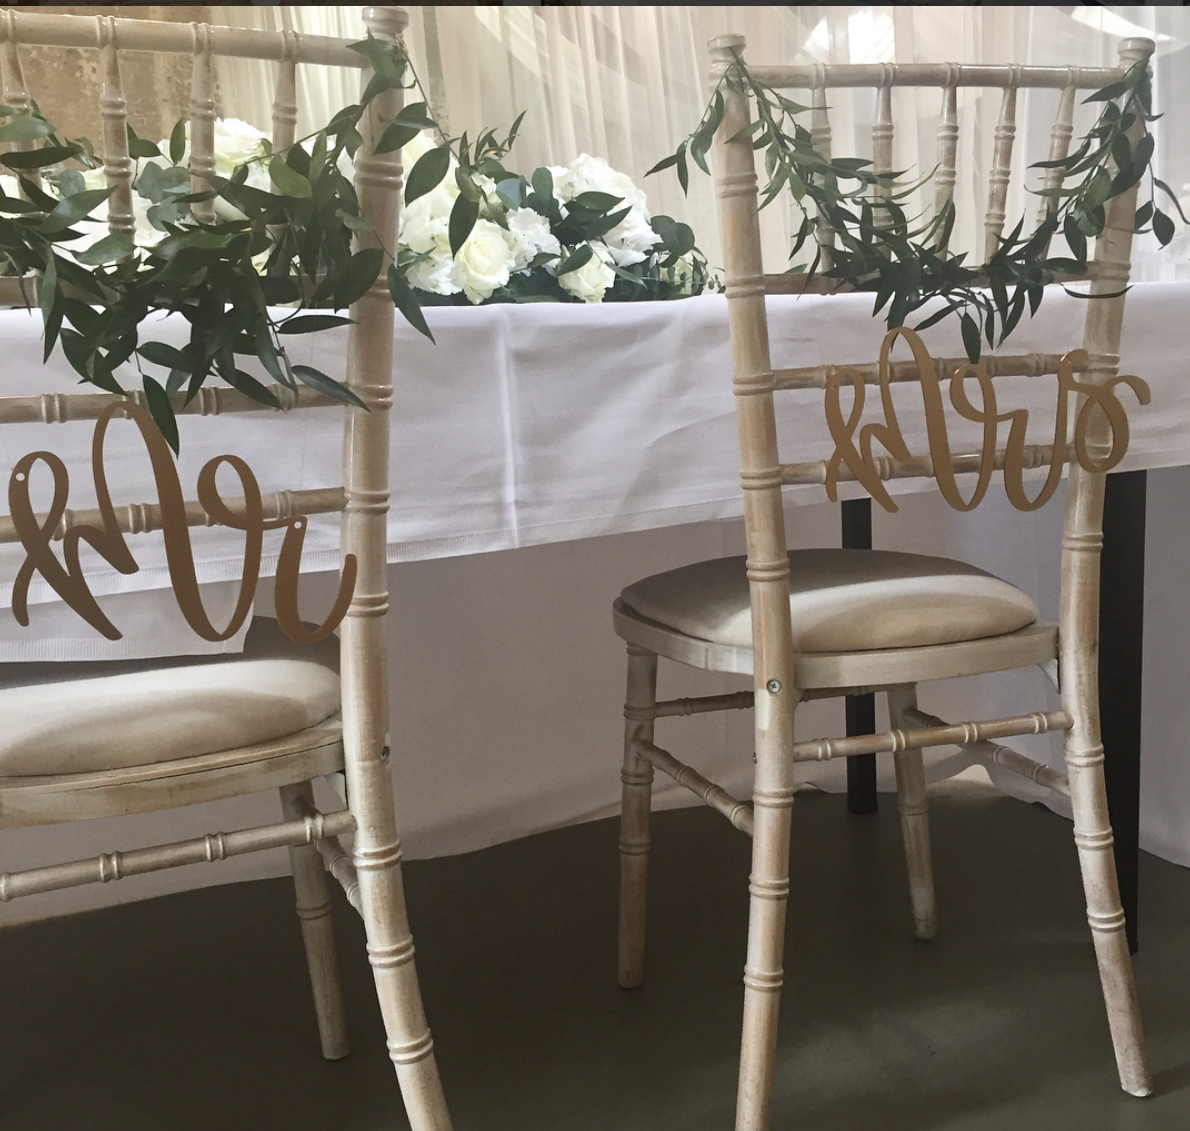 Wedding chair signage